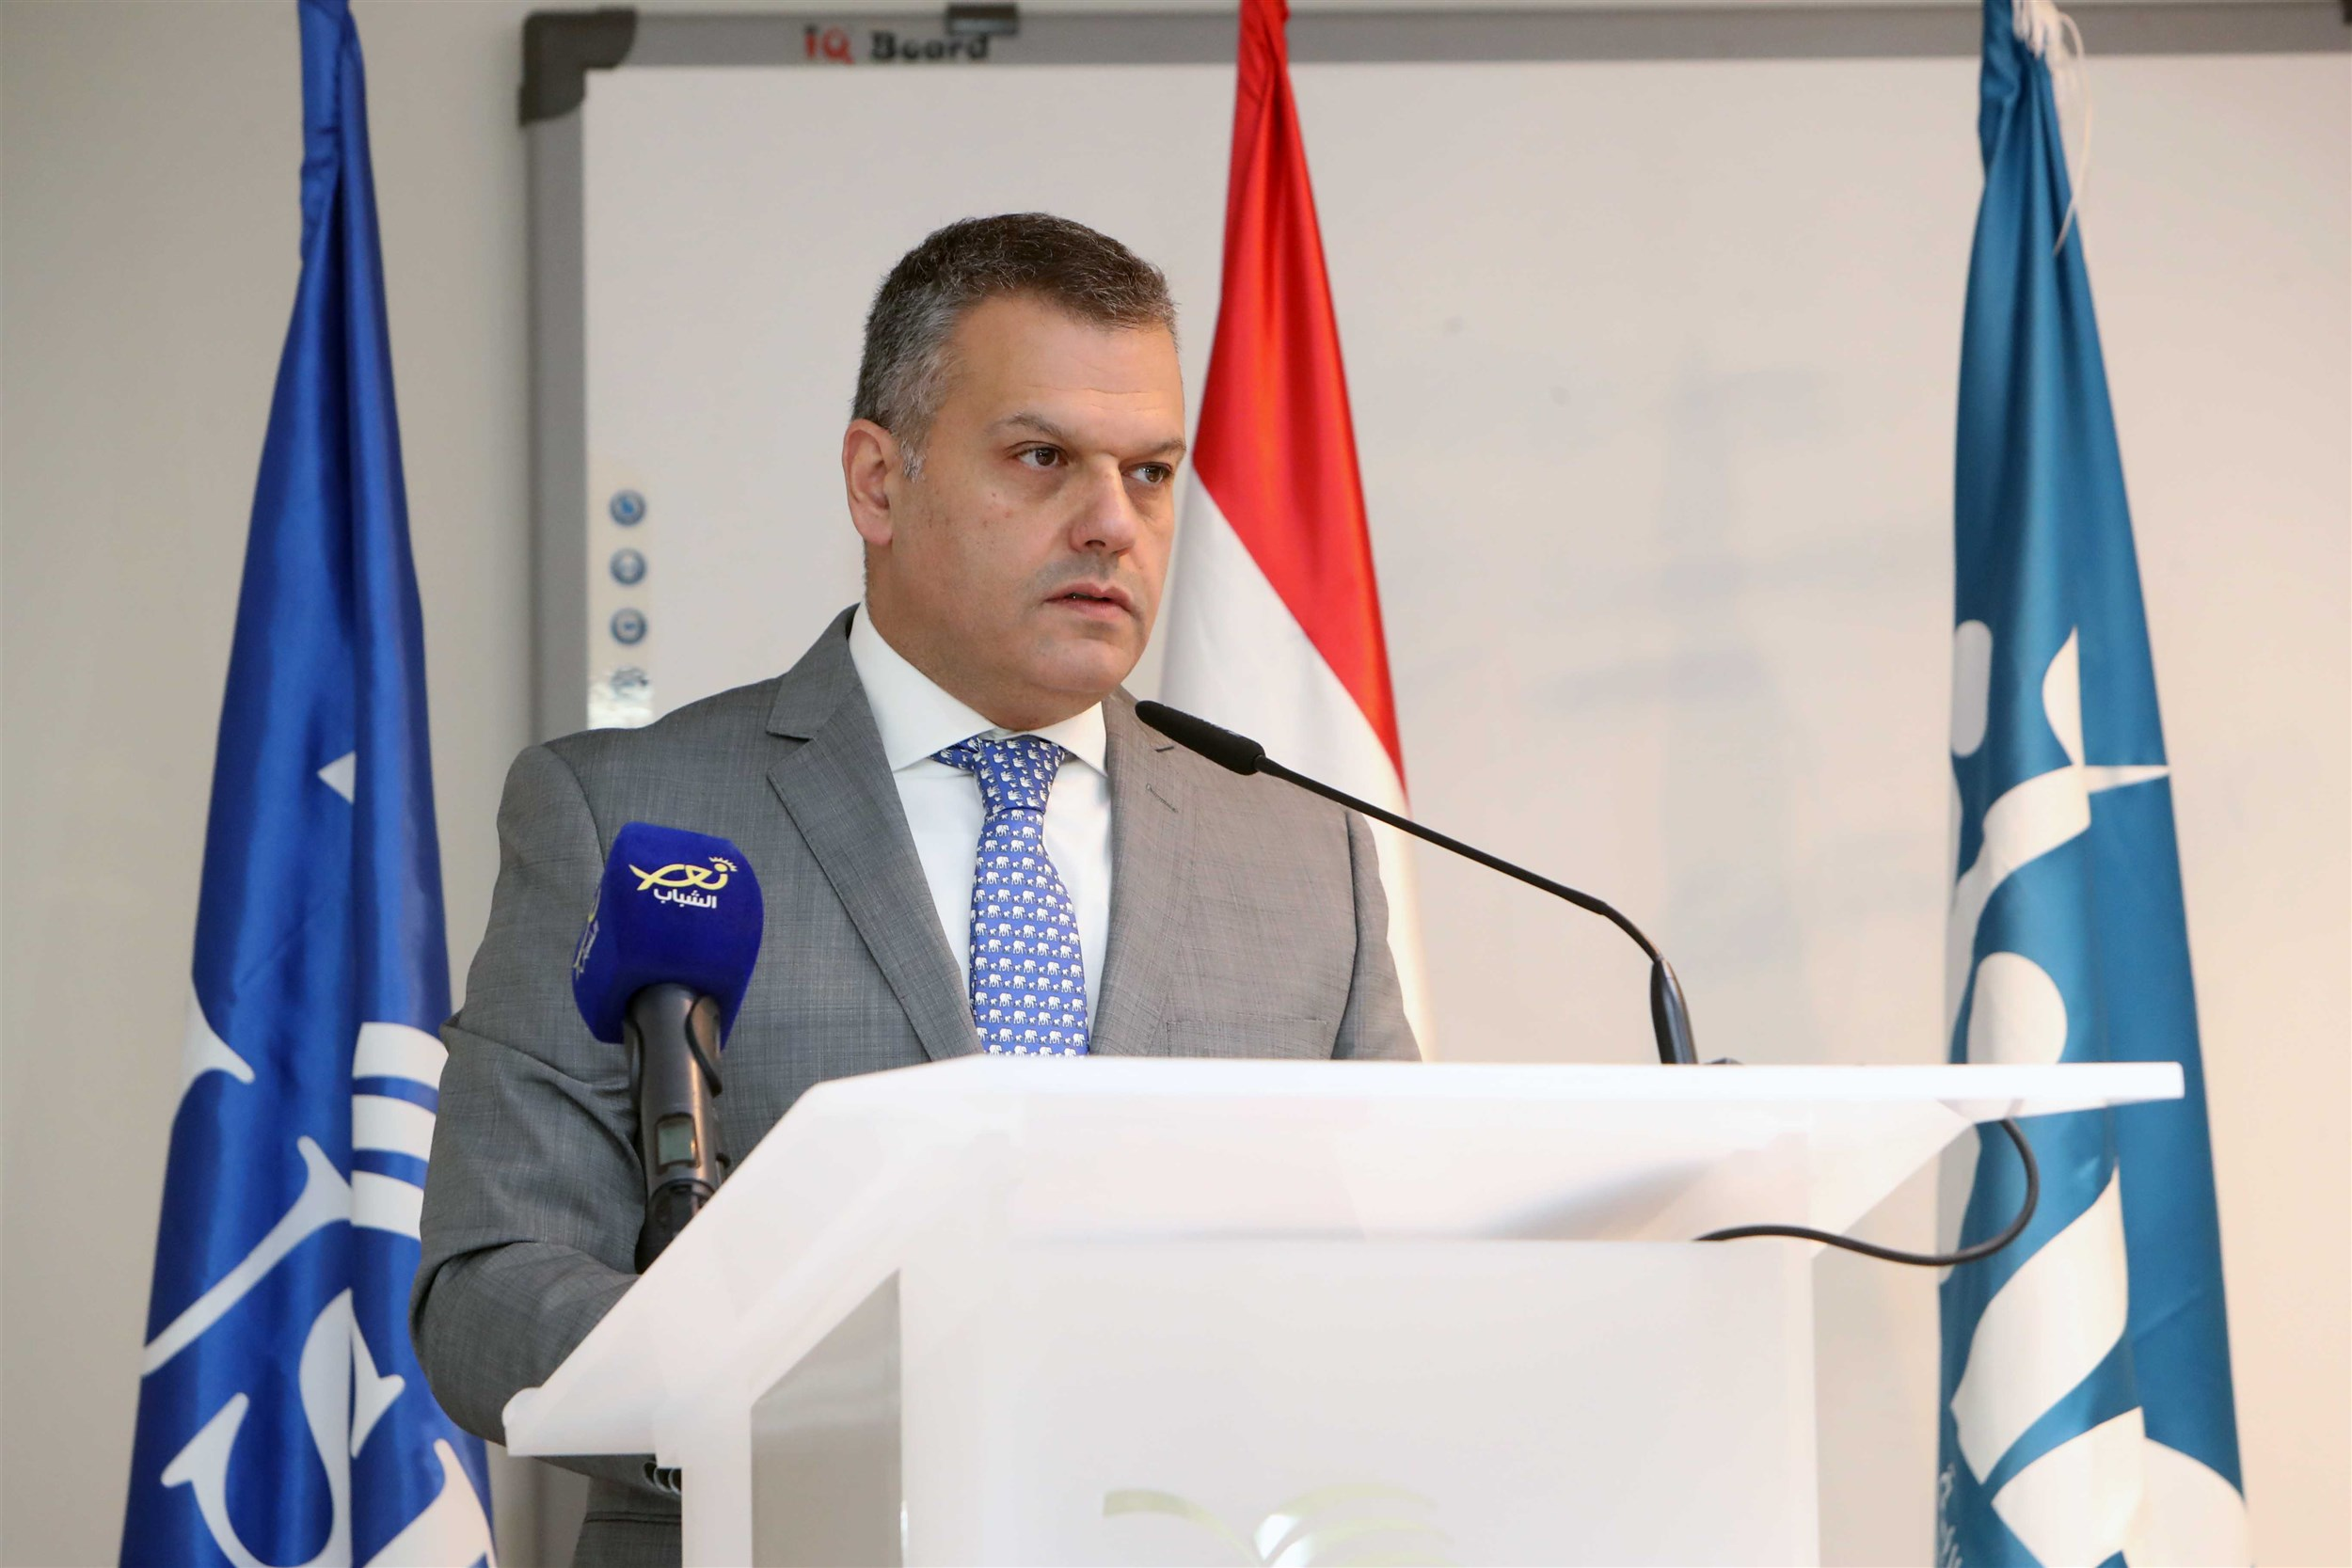 mr. elias abou fadel, the acting director of the advancement office which serves usek through its collaborations and fundraising programs from numerous donors.